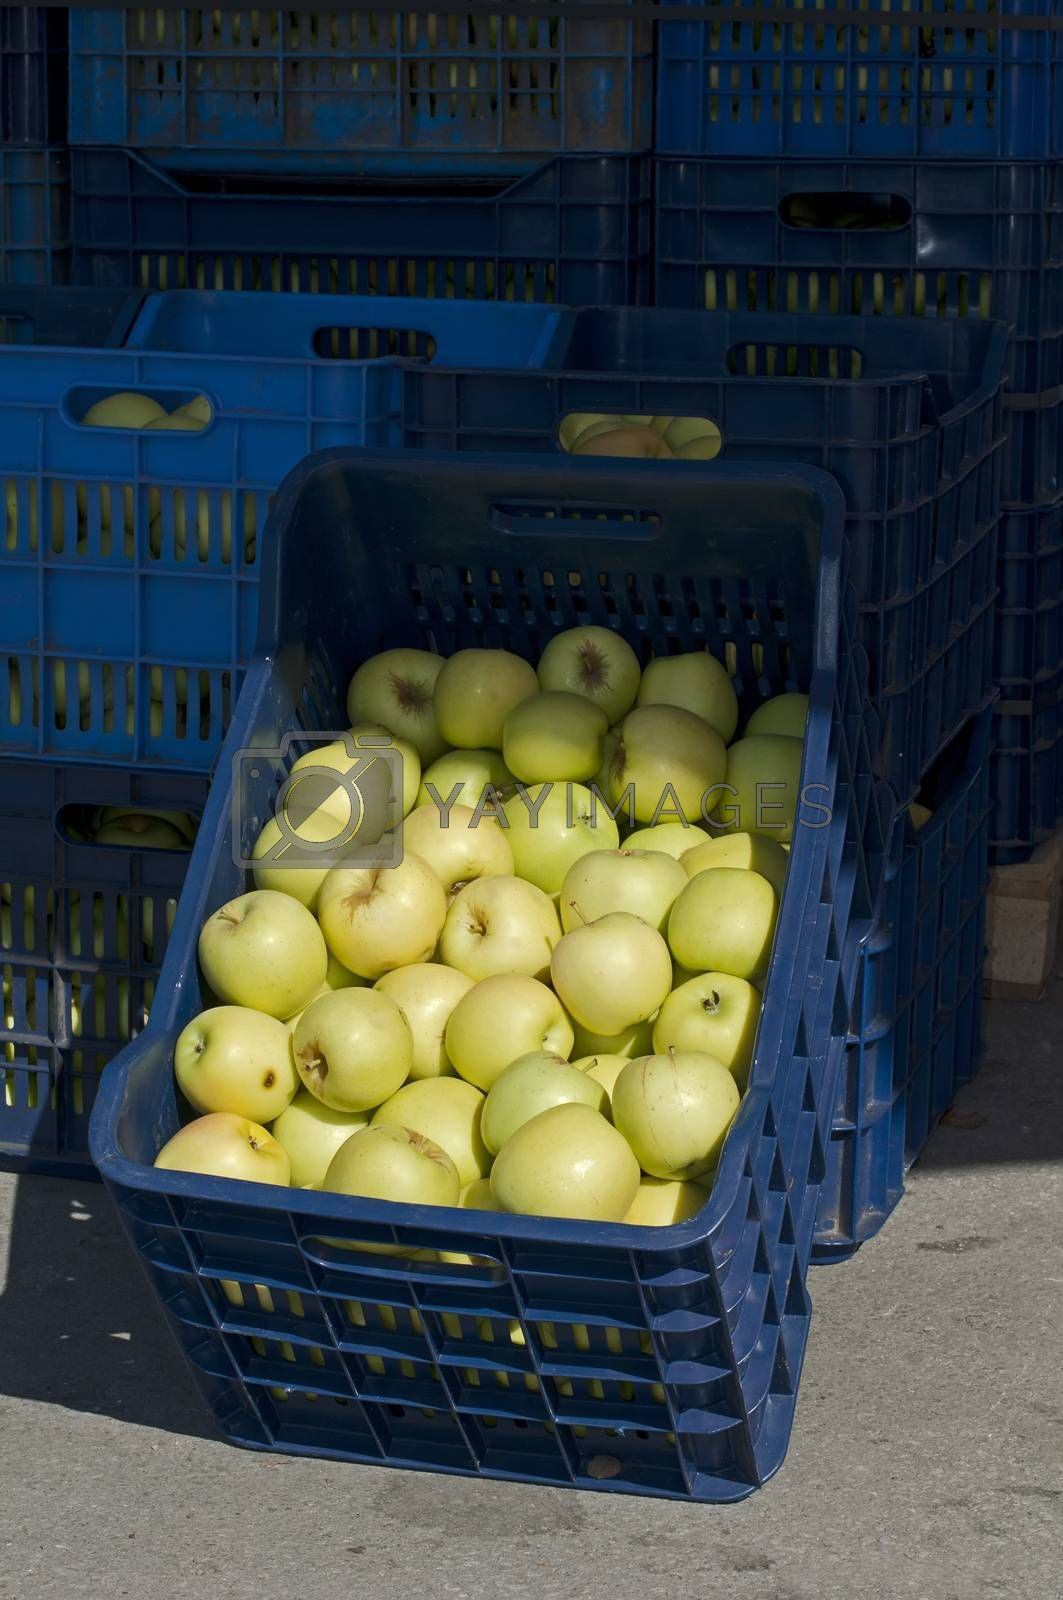 Apples in crates  in Wholesale market